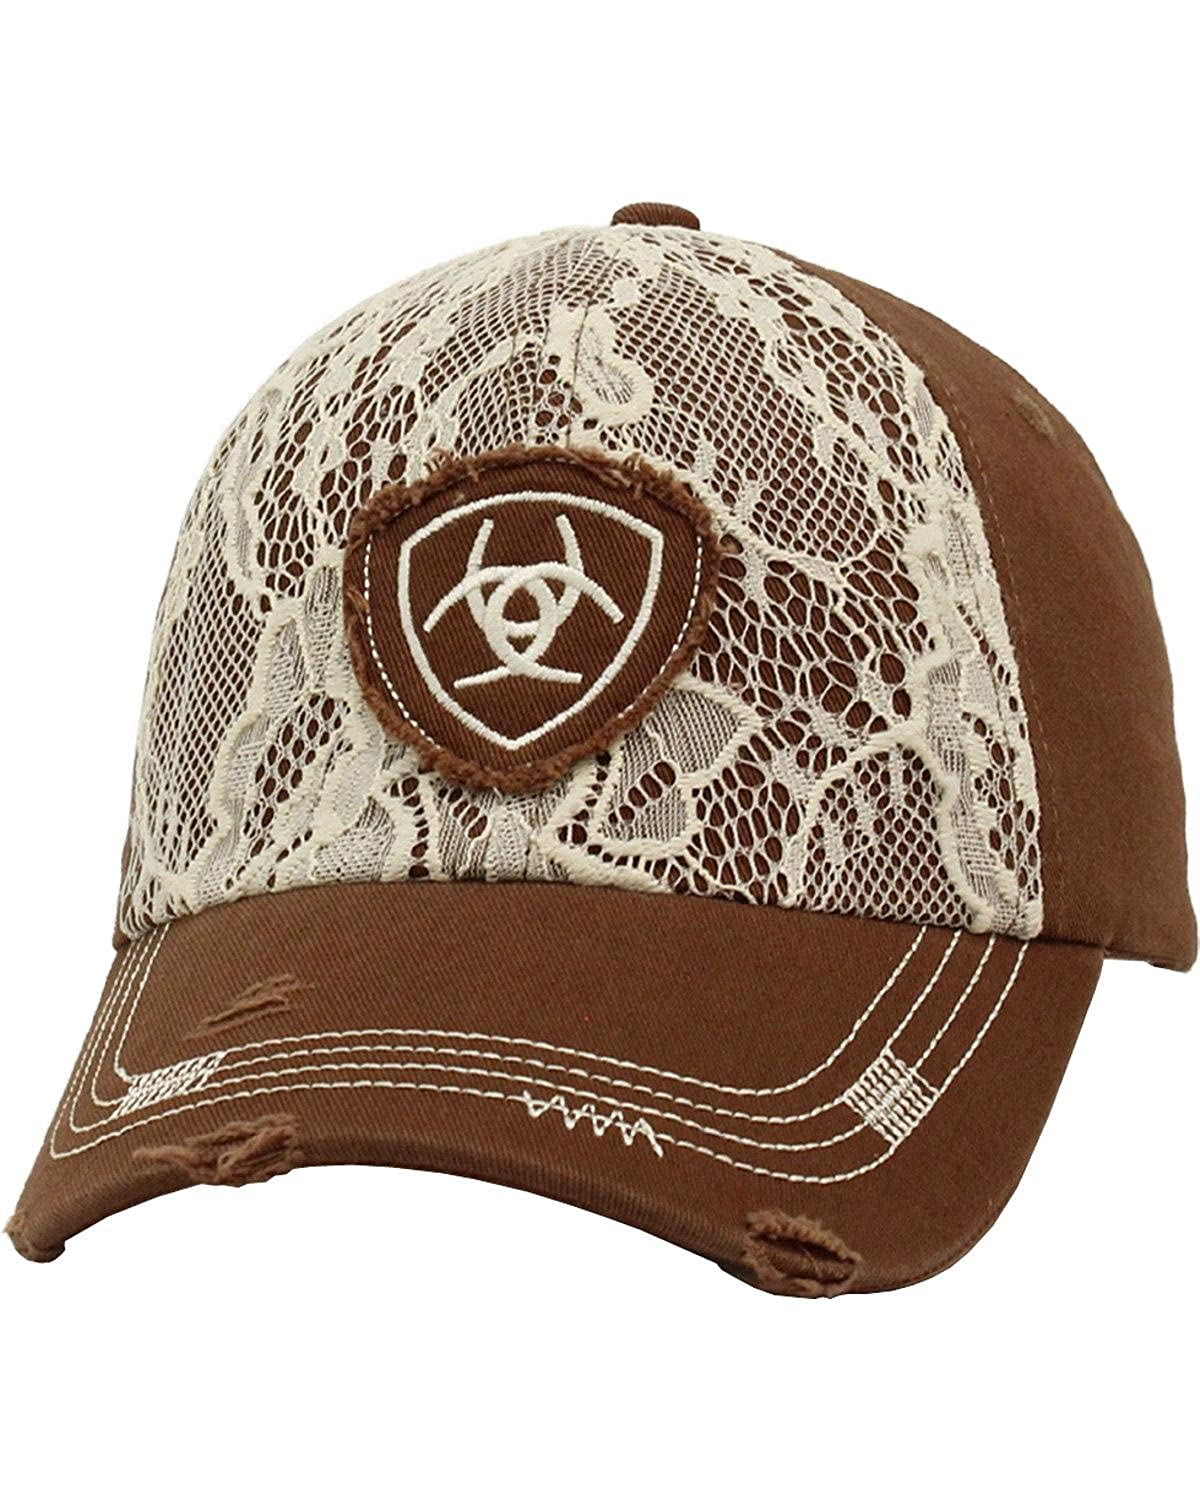 6c205fbb03aa3e Baseball Caps : Online Shopping for Clothing, Shoes, Jewelry, Pet ...